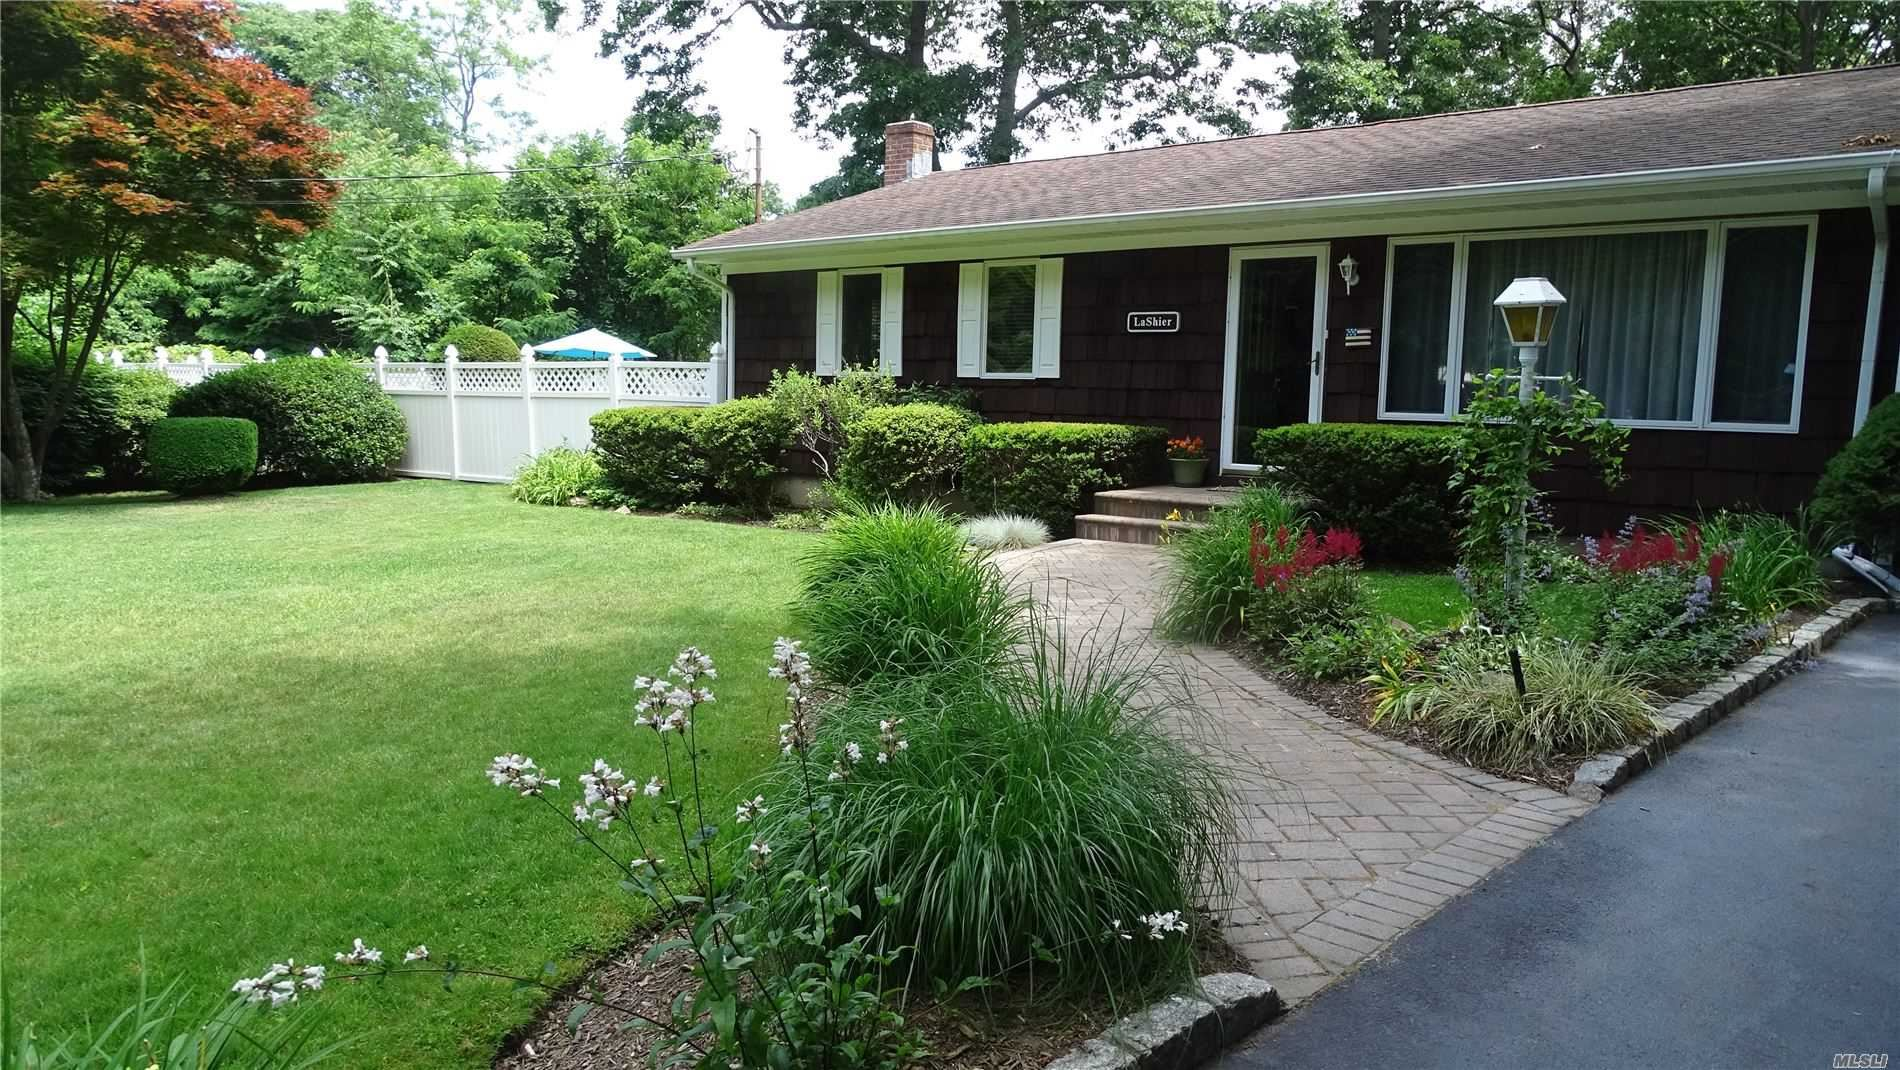 126 Overhill Rd, Wading River, NY 11792 - MLS#: 3214282